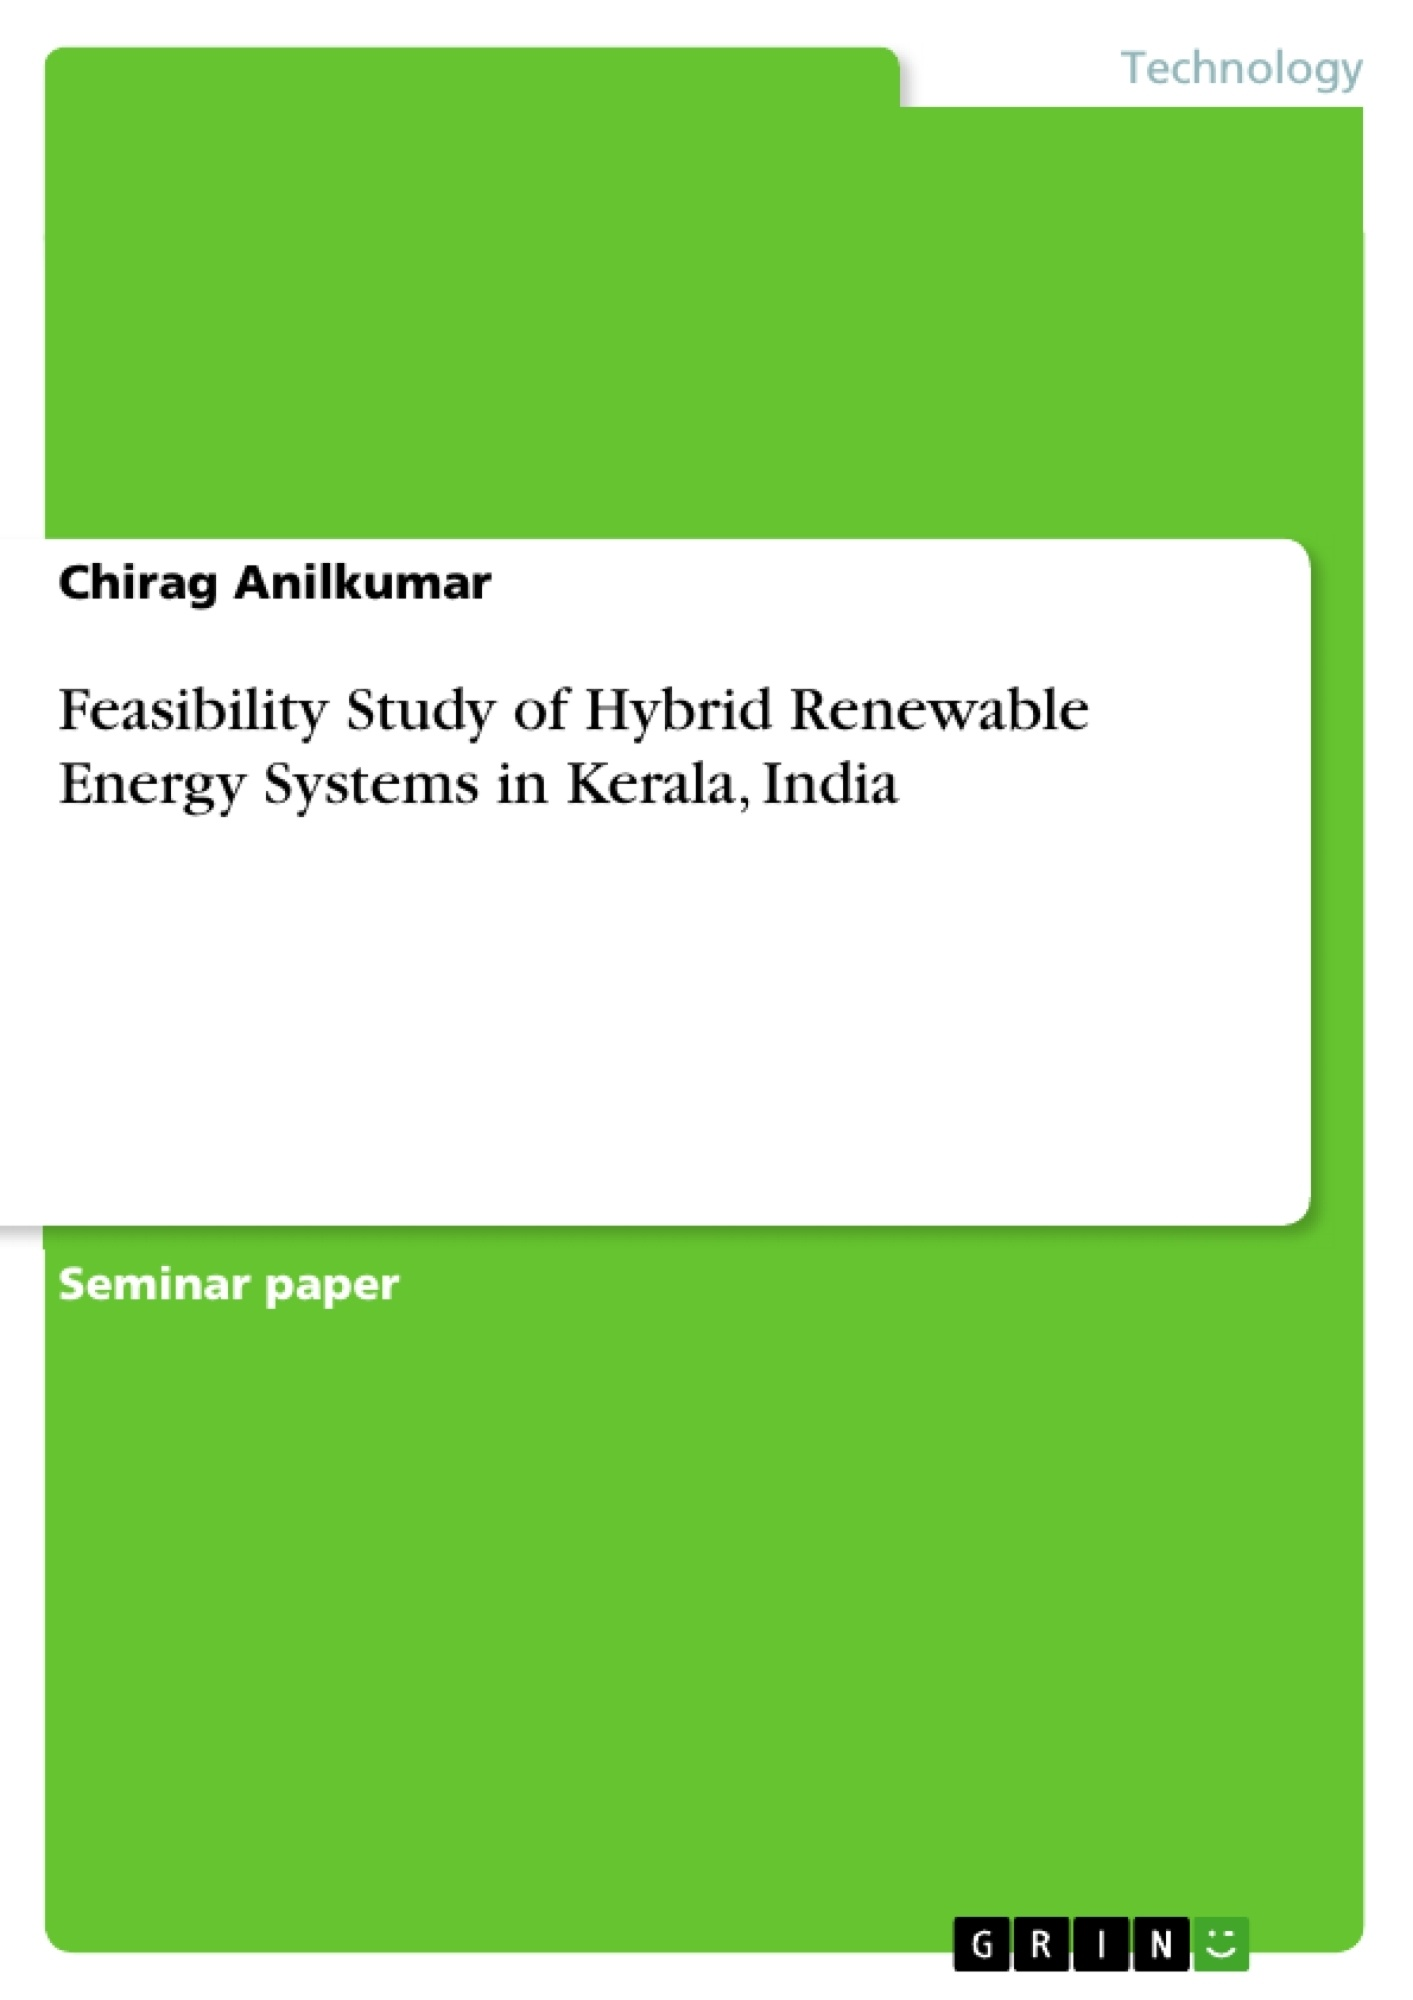 Title: Feasibility Study of Hybrid Renewable Energy Systems in Kerala, India